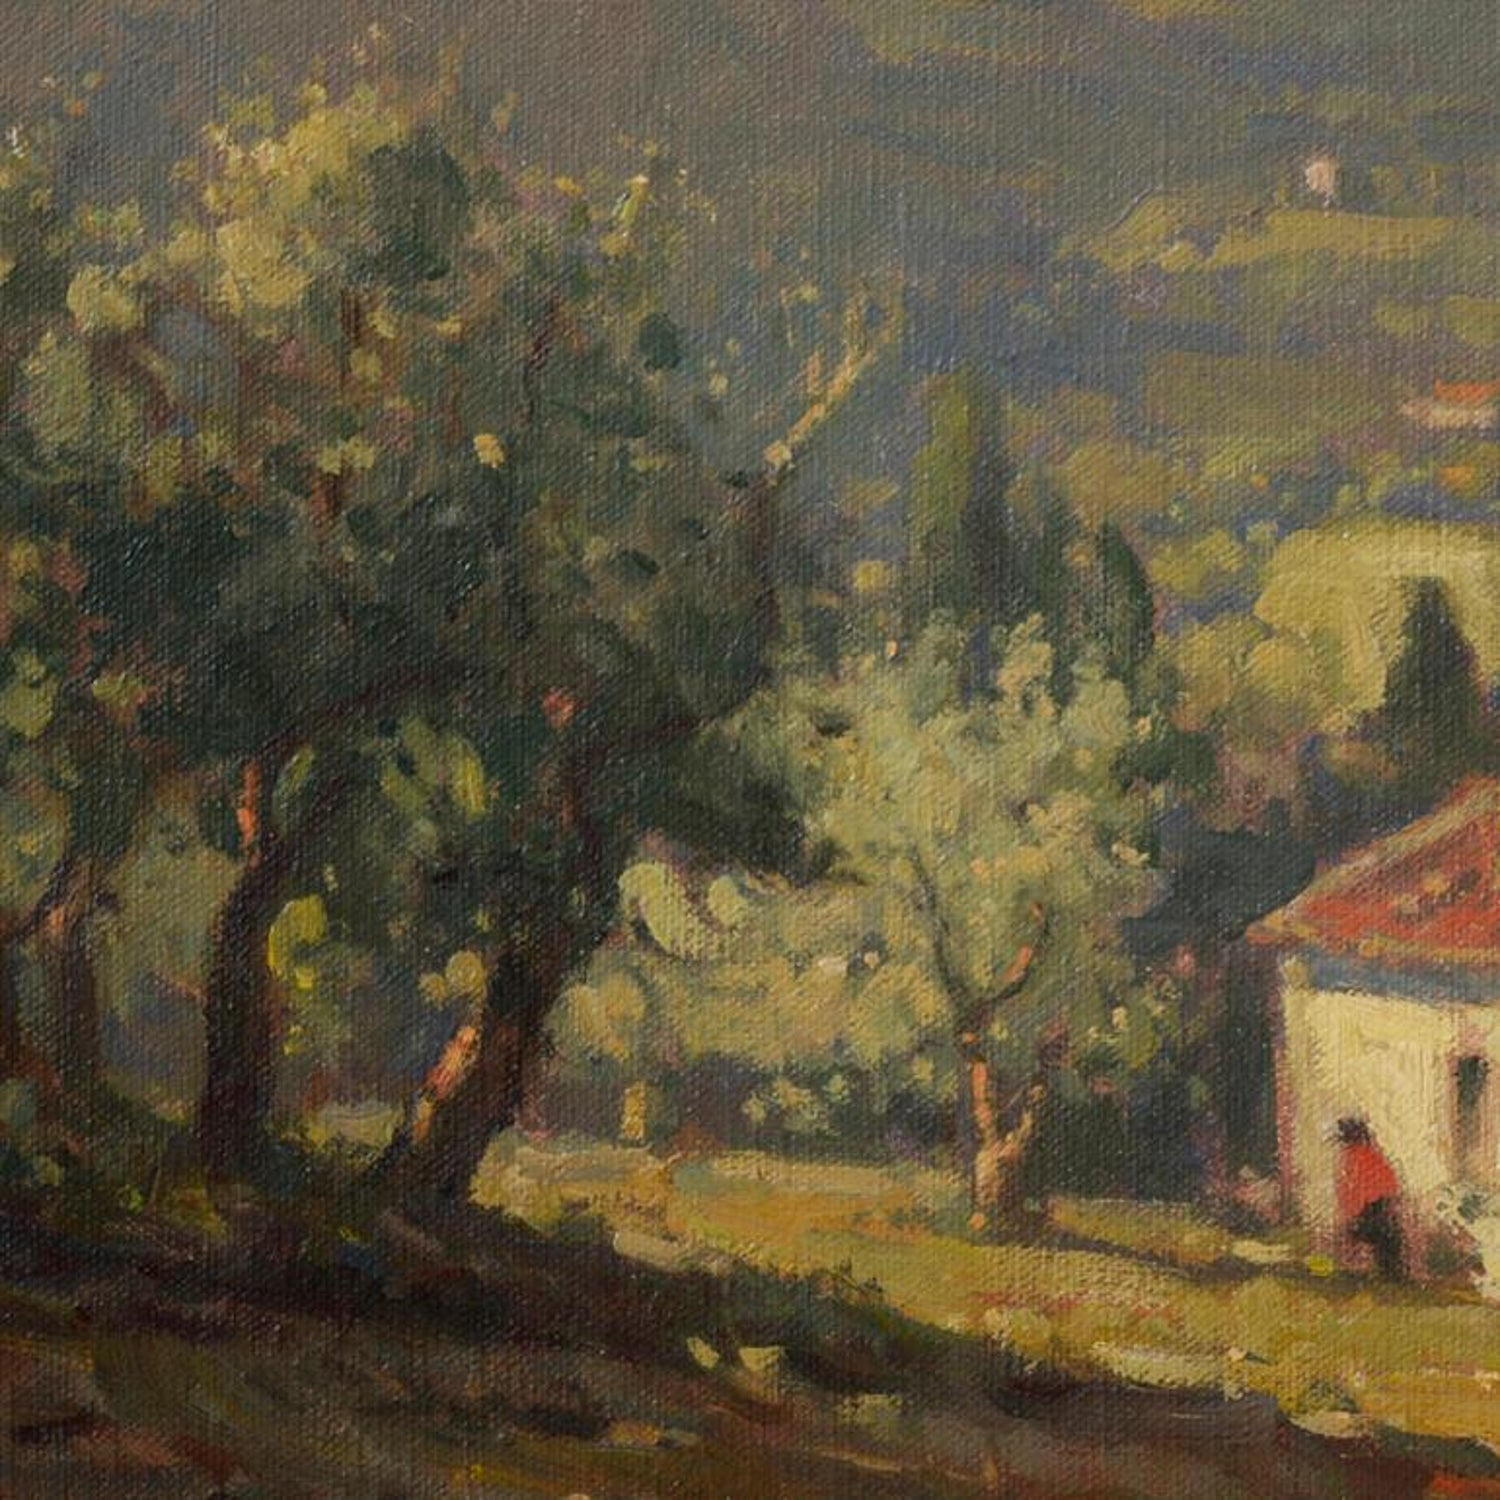 John C. Traynor - Olive Grove, Tuscany, Painting For Sale at 1stdibs